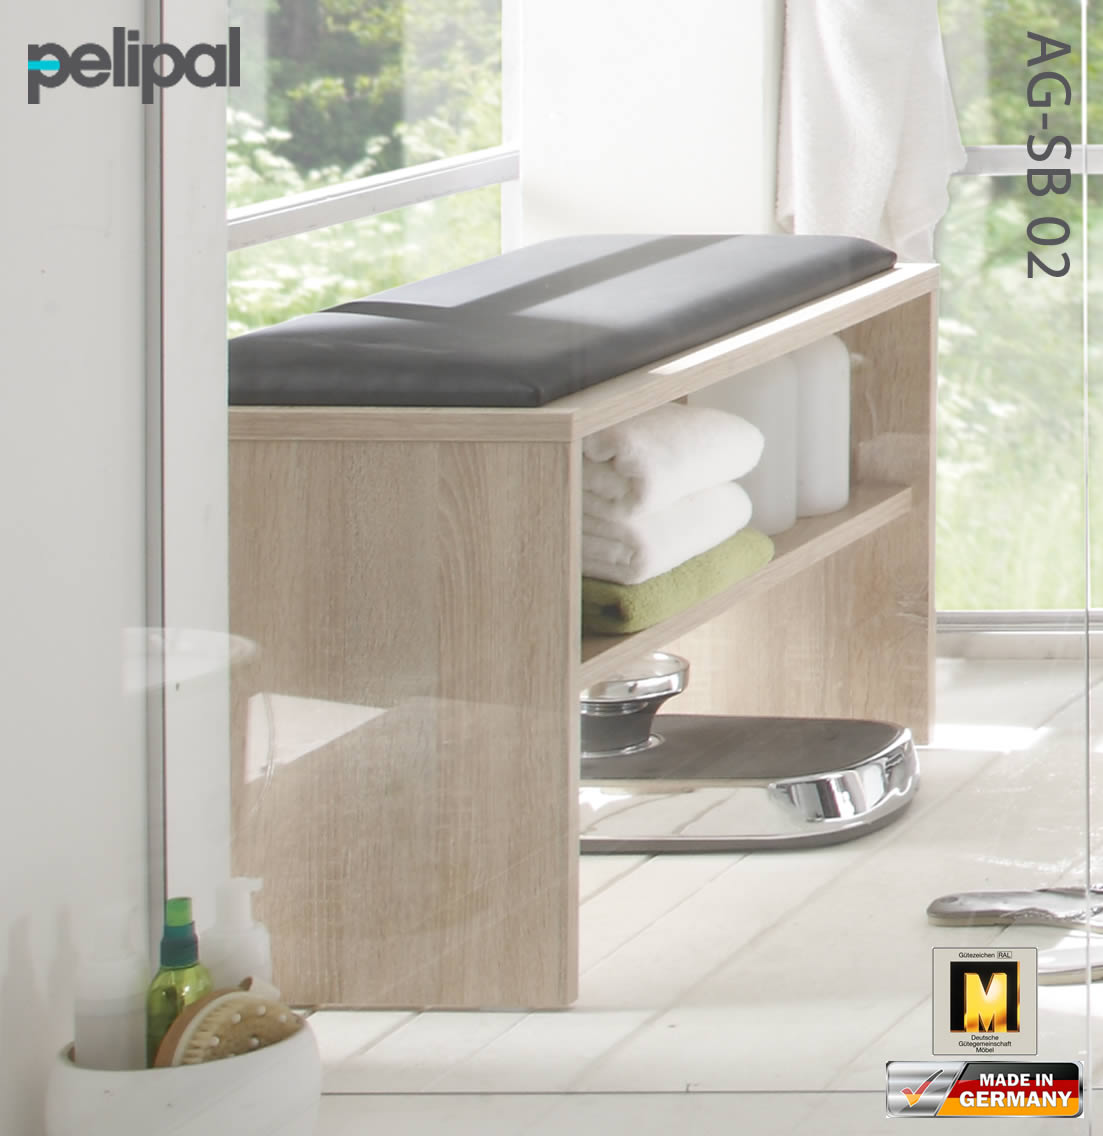 pelipal solitaire 6005 sitzbank 90 cm impuls home. Black Bedroom Furniture Sets. Home Design Ideas